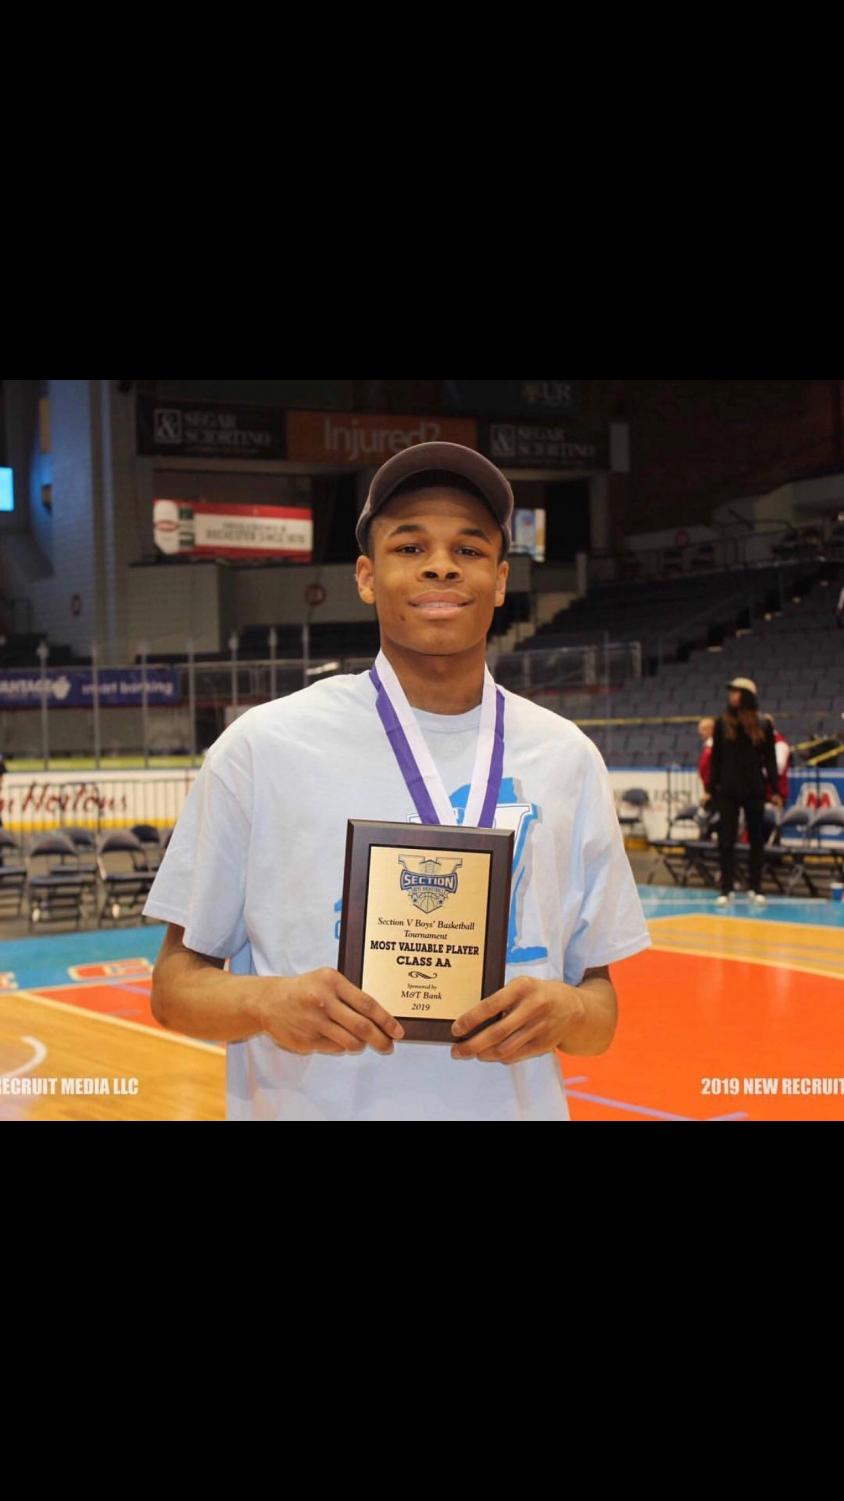 Junior guard Jermaine Taggart holds MVP award after championship game in Blue Cross Arena.